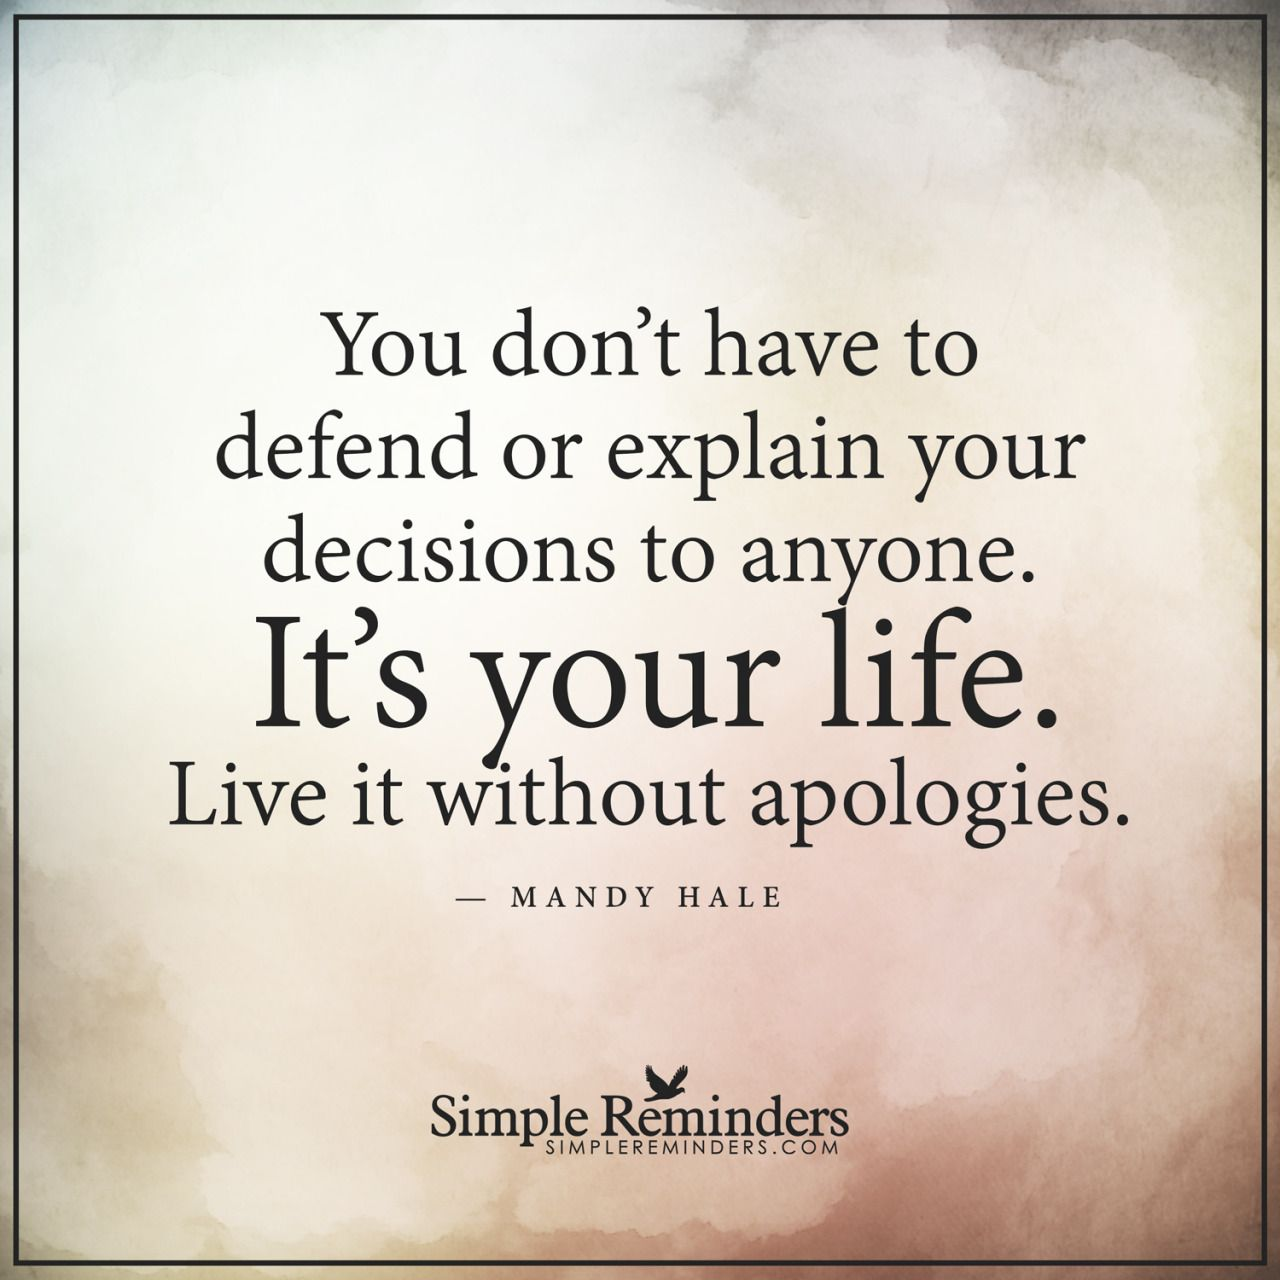 Mandy Hale Quotes You Don't Have To Defend Or Explain Your Decisions To Anyoneit's